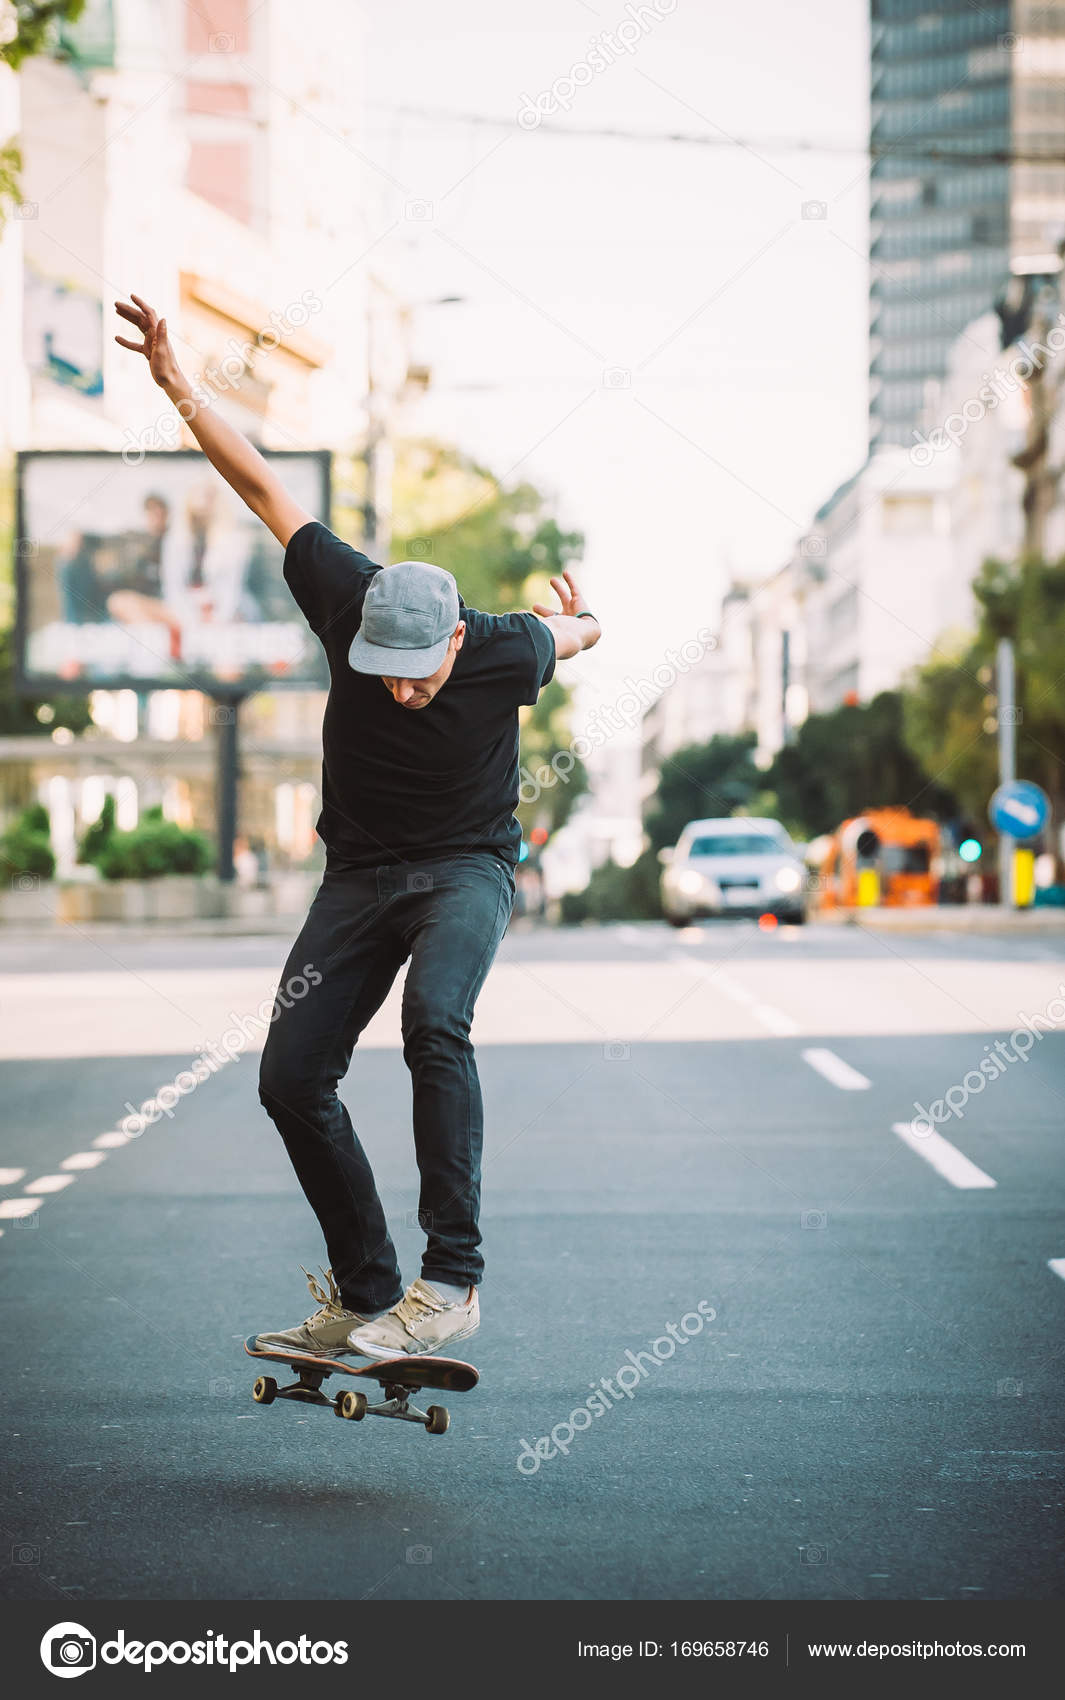 pro skater doing tricks and jumps on street free ride stock photo